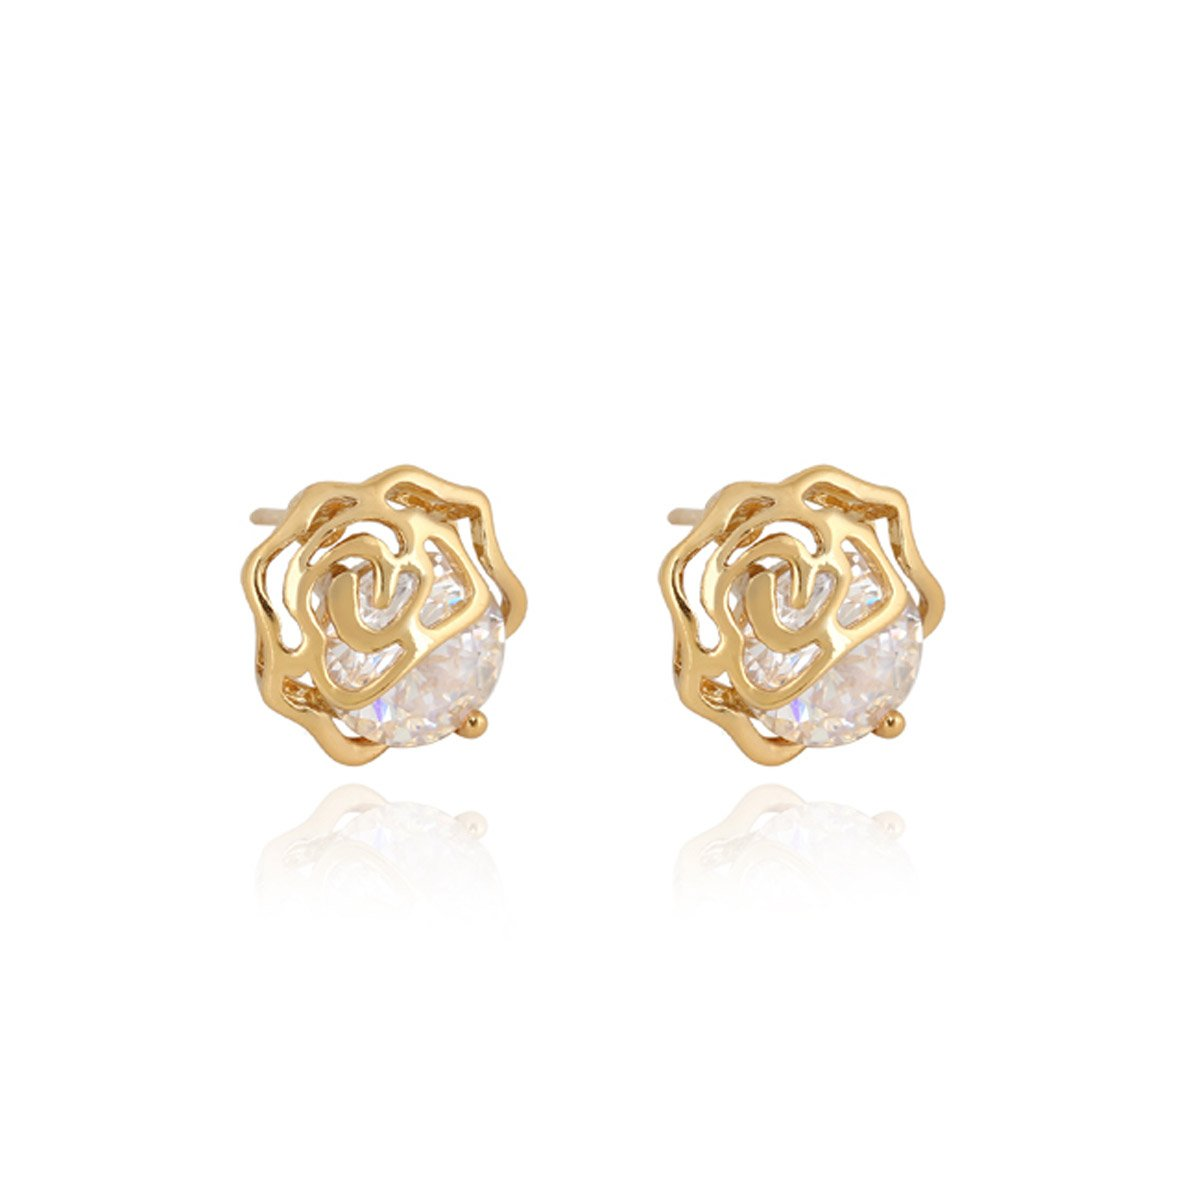 1Pair-18k-Gold-Plated-Flower-Stud-Earrings-Crystal-Zircon-10-7mmx9-9mm